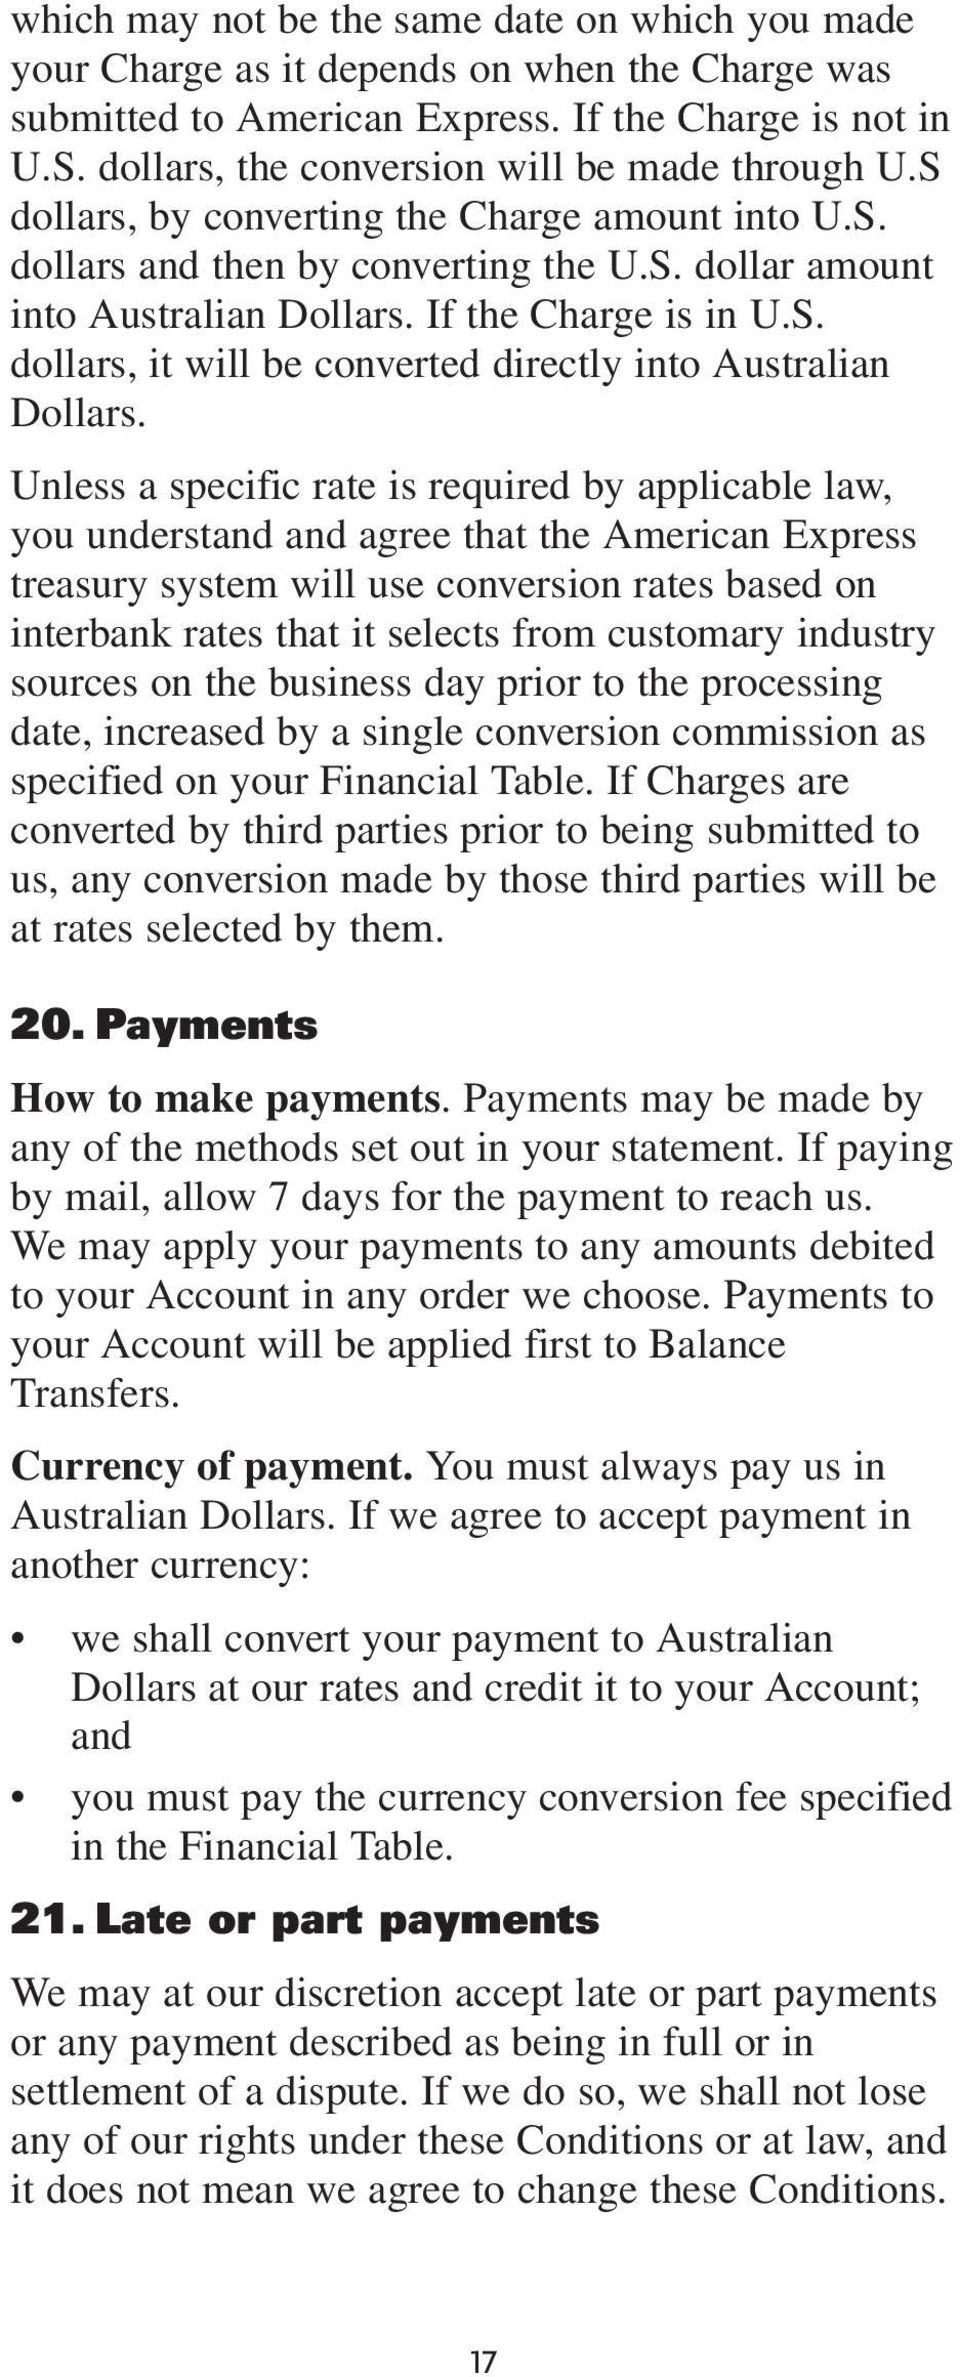 If the Charge is in U.S. dollars, it will be converted directly into Australian Dollars.